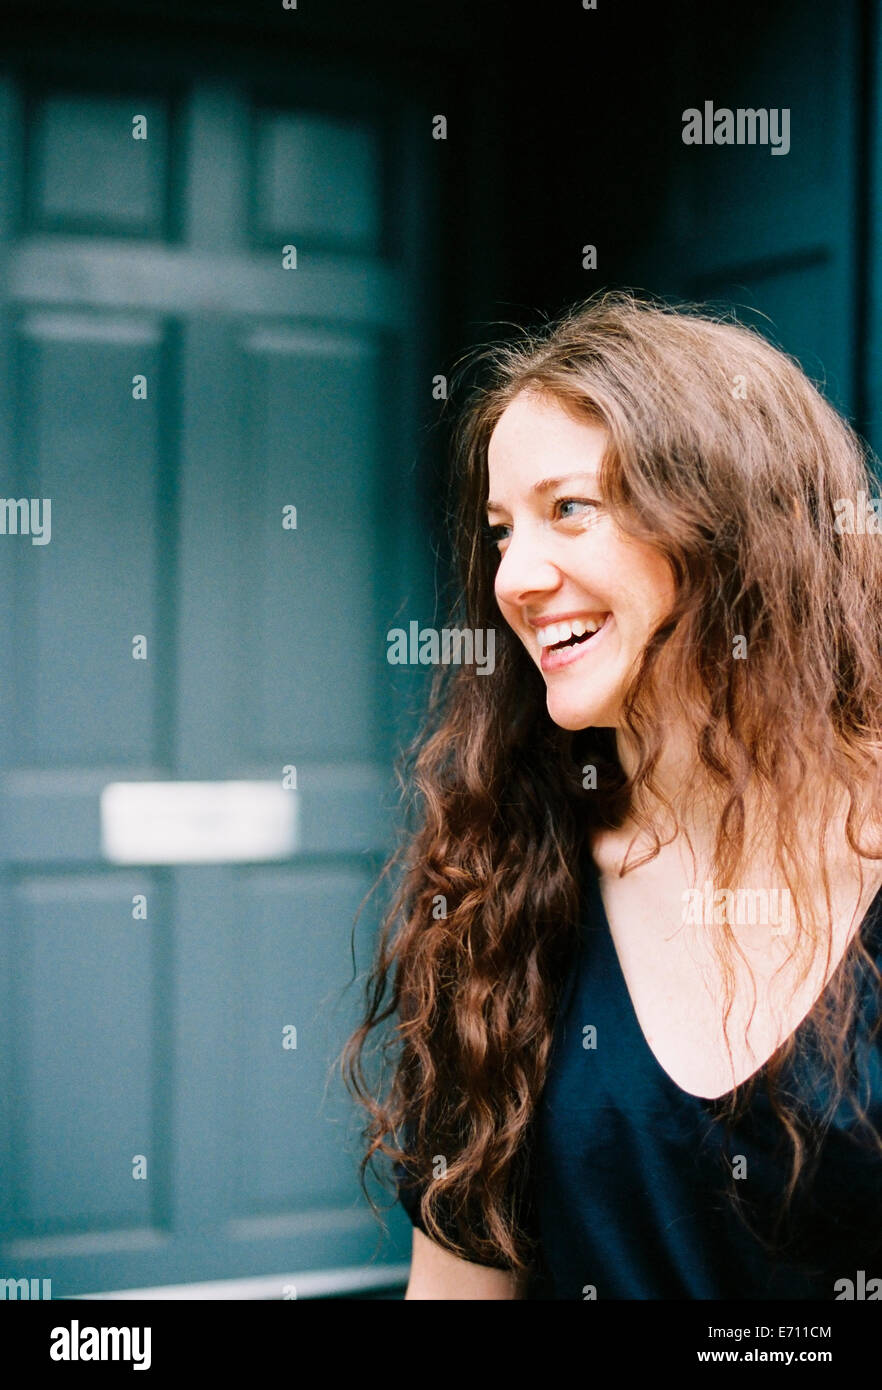 A woman smiling standing à une porte ouverte. Photo Stock